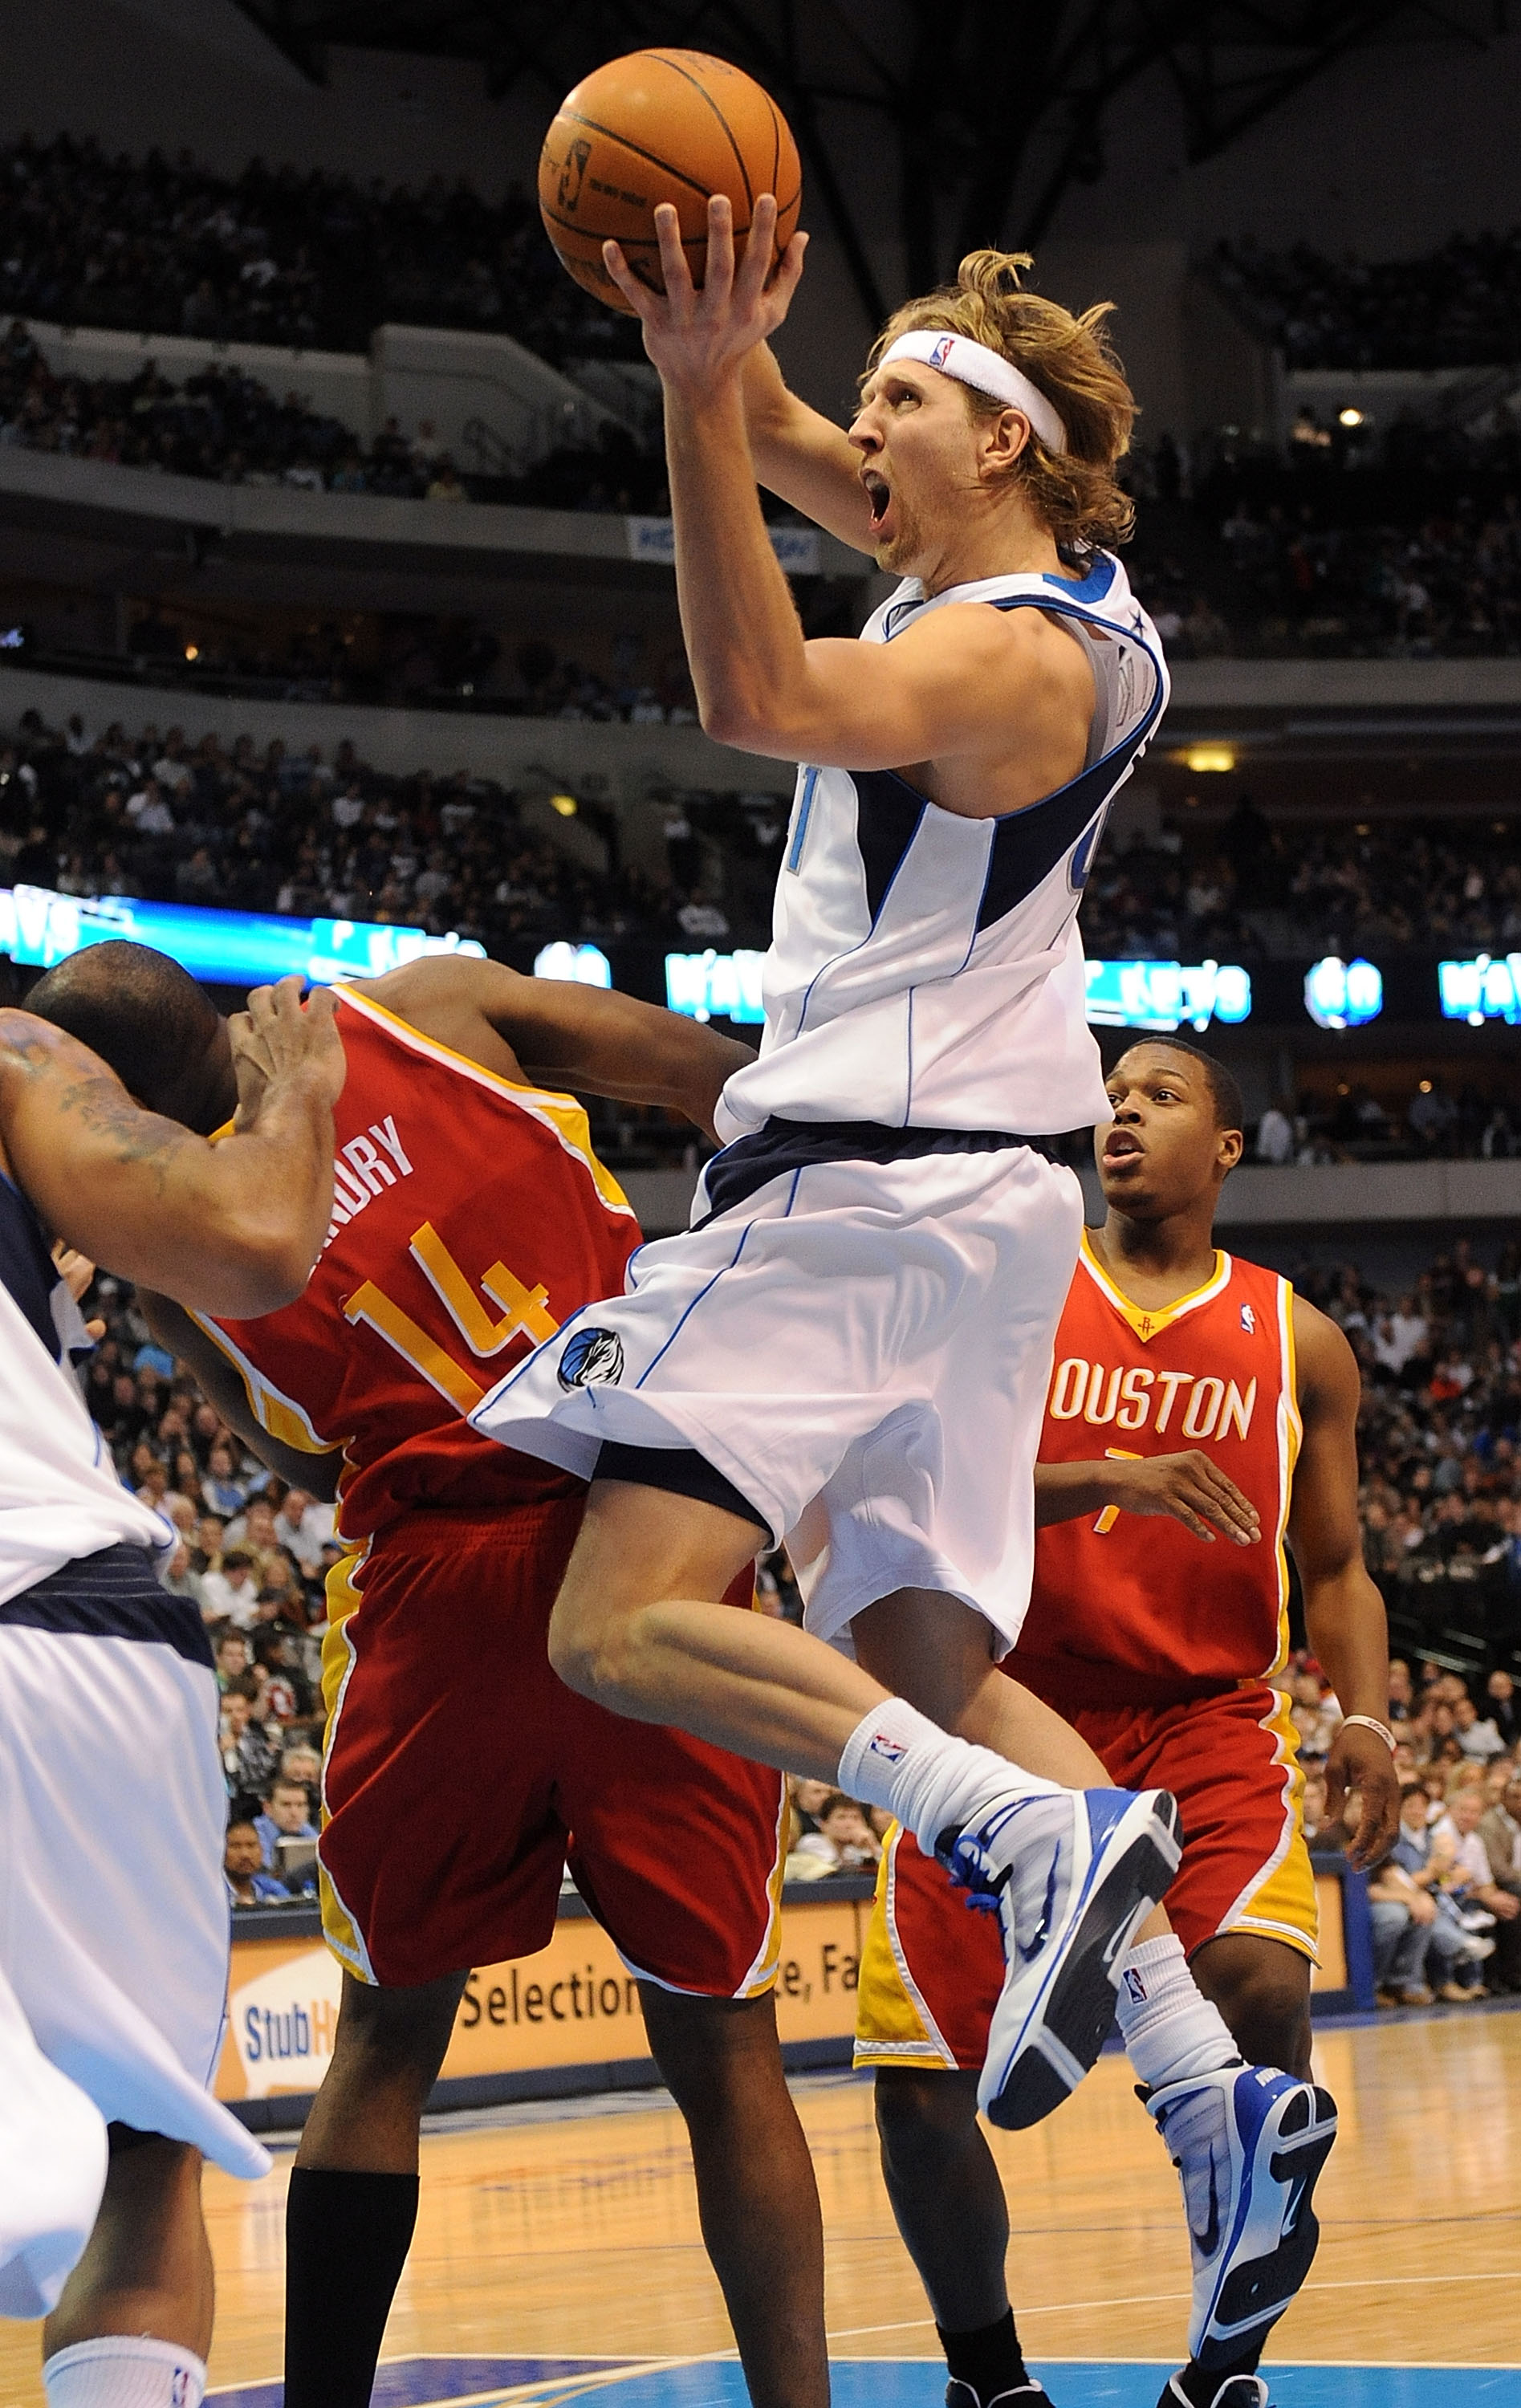 DALLAS - DECEMBER 18:  Forward Dirk Nowitzki #41 of the Dallas Mavericks takes a shot against Carl Landry #14 of the Houston Rockets on December 18, 2009 at American Airlines Center in Dallas, Texas.  NOTE TO USER: User expressly acknowledges and agrees t